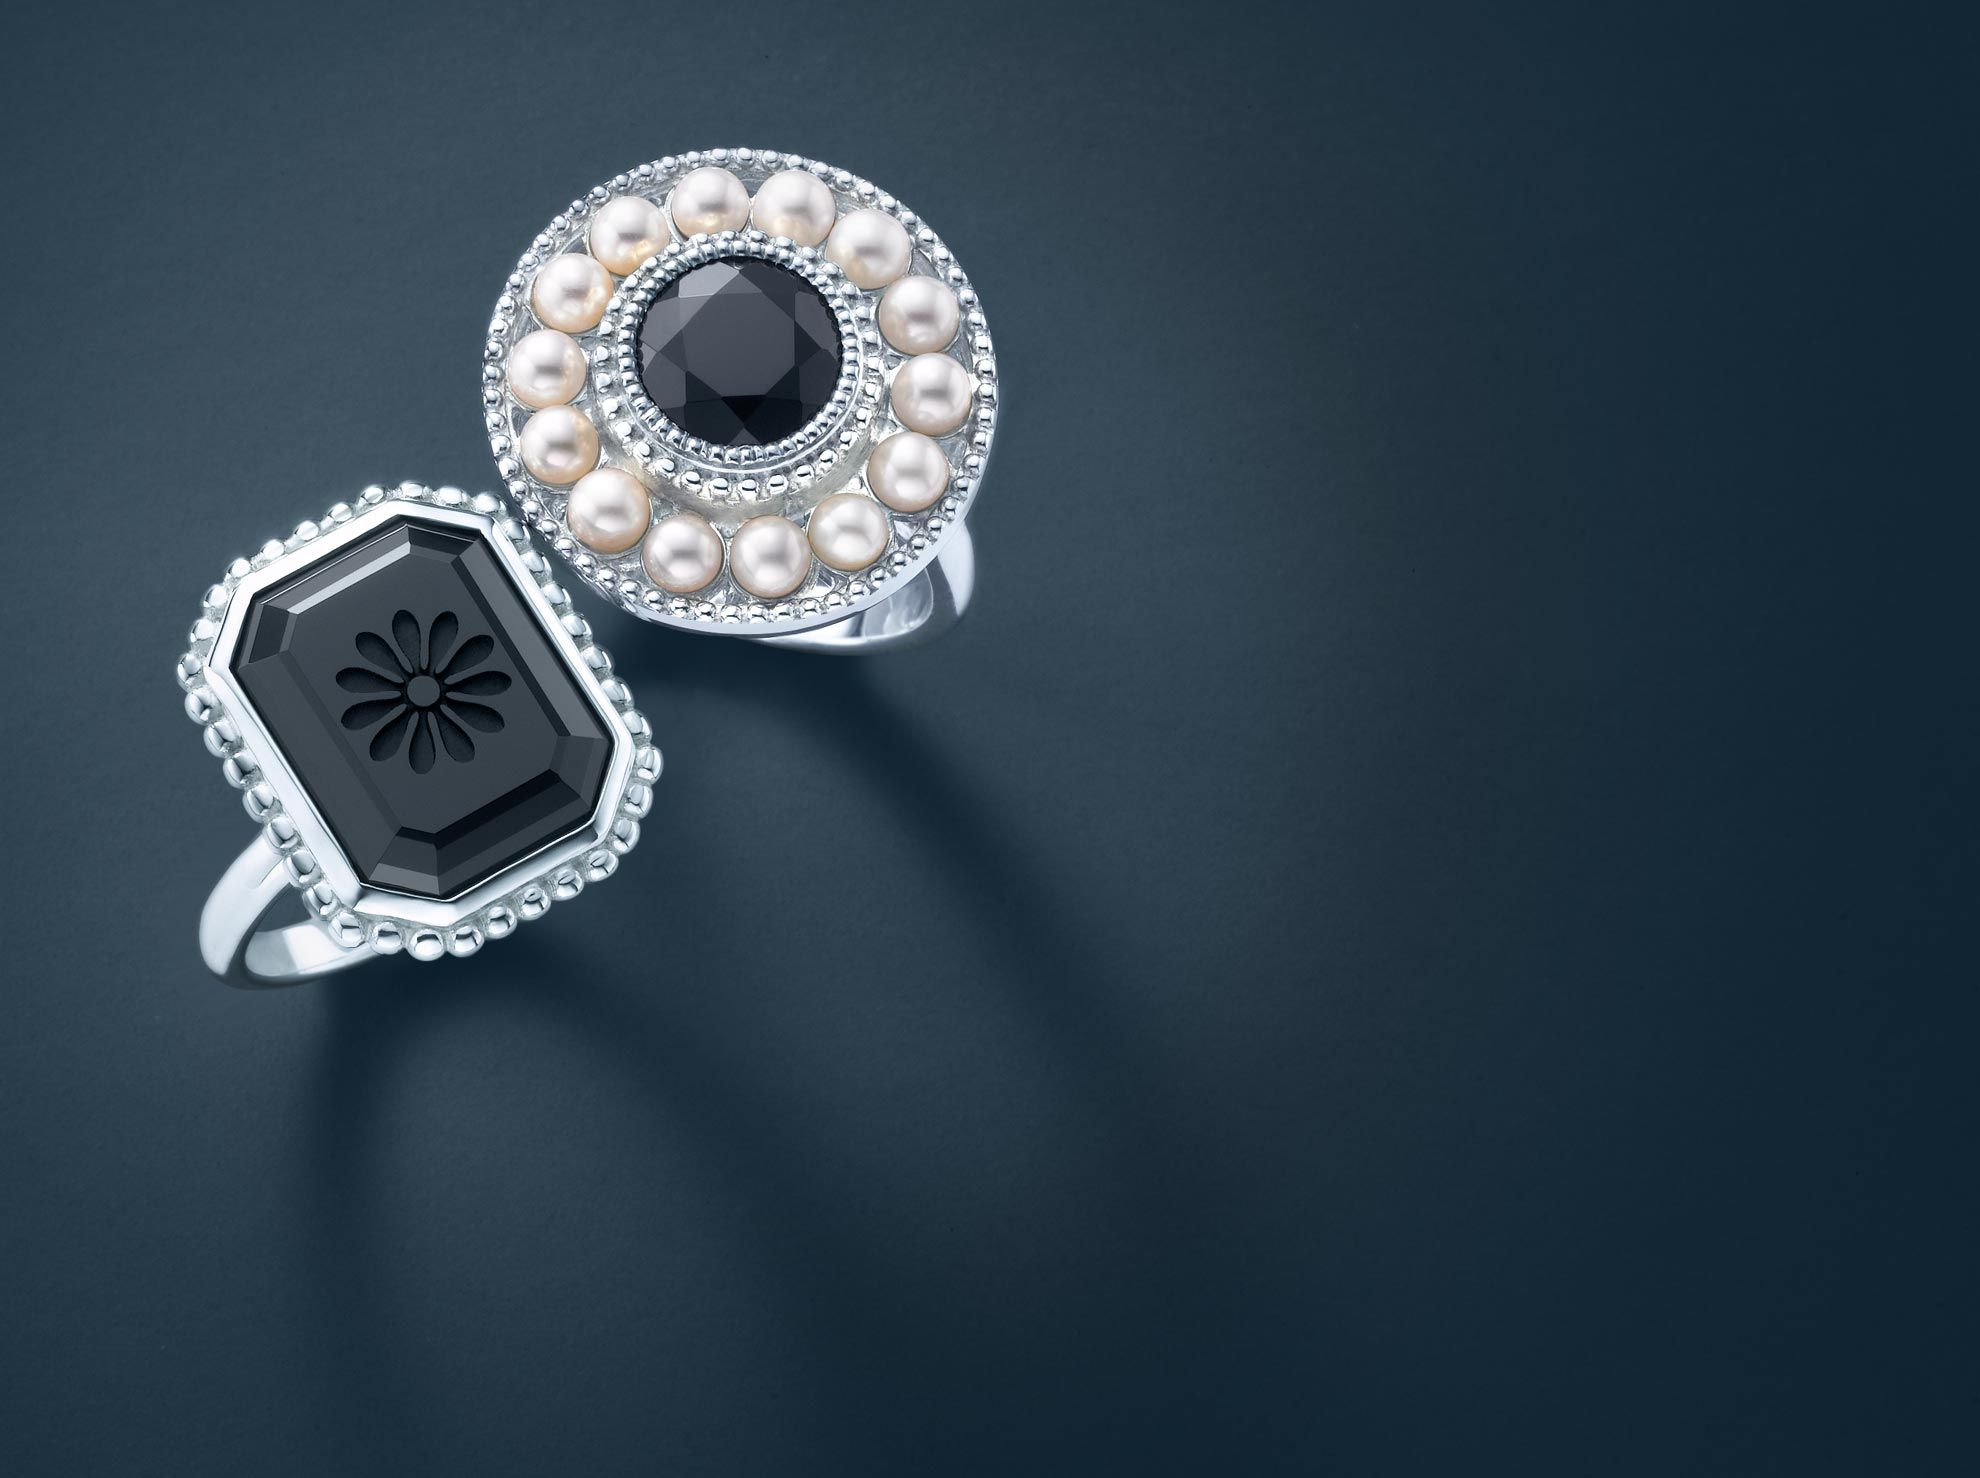 Ziegfeld Collection Pearl Ring Flair Tiffany Rings